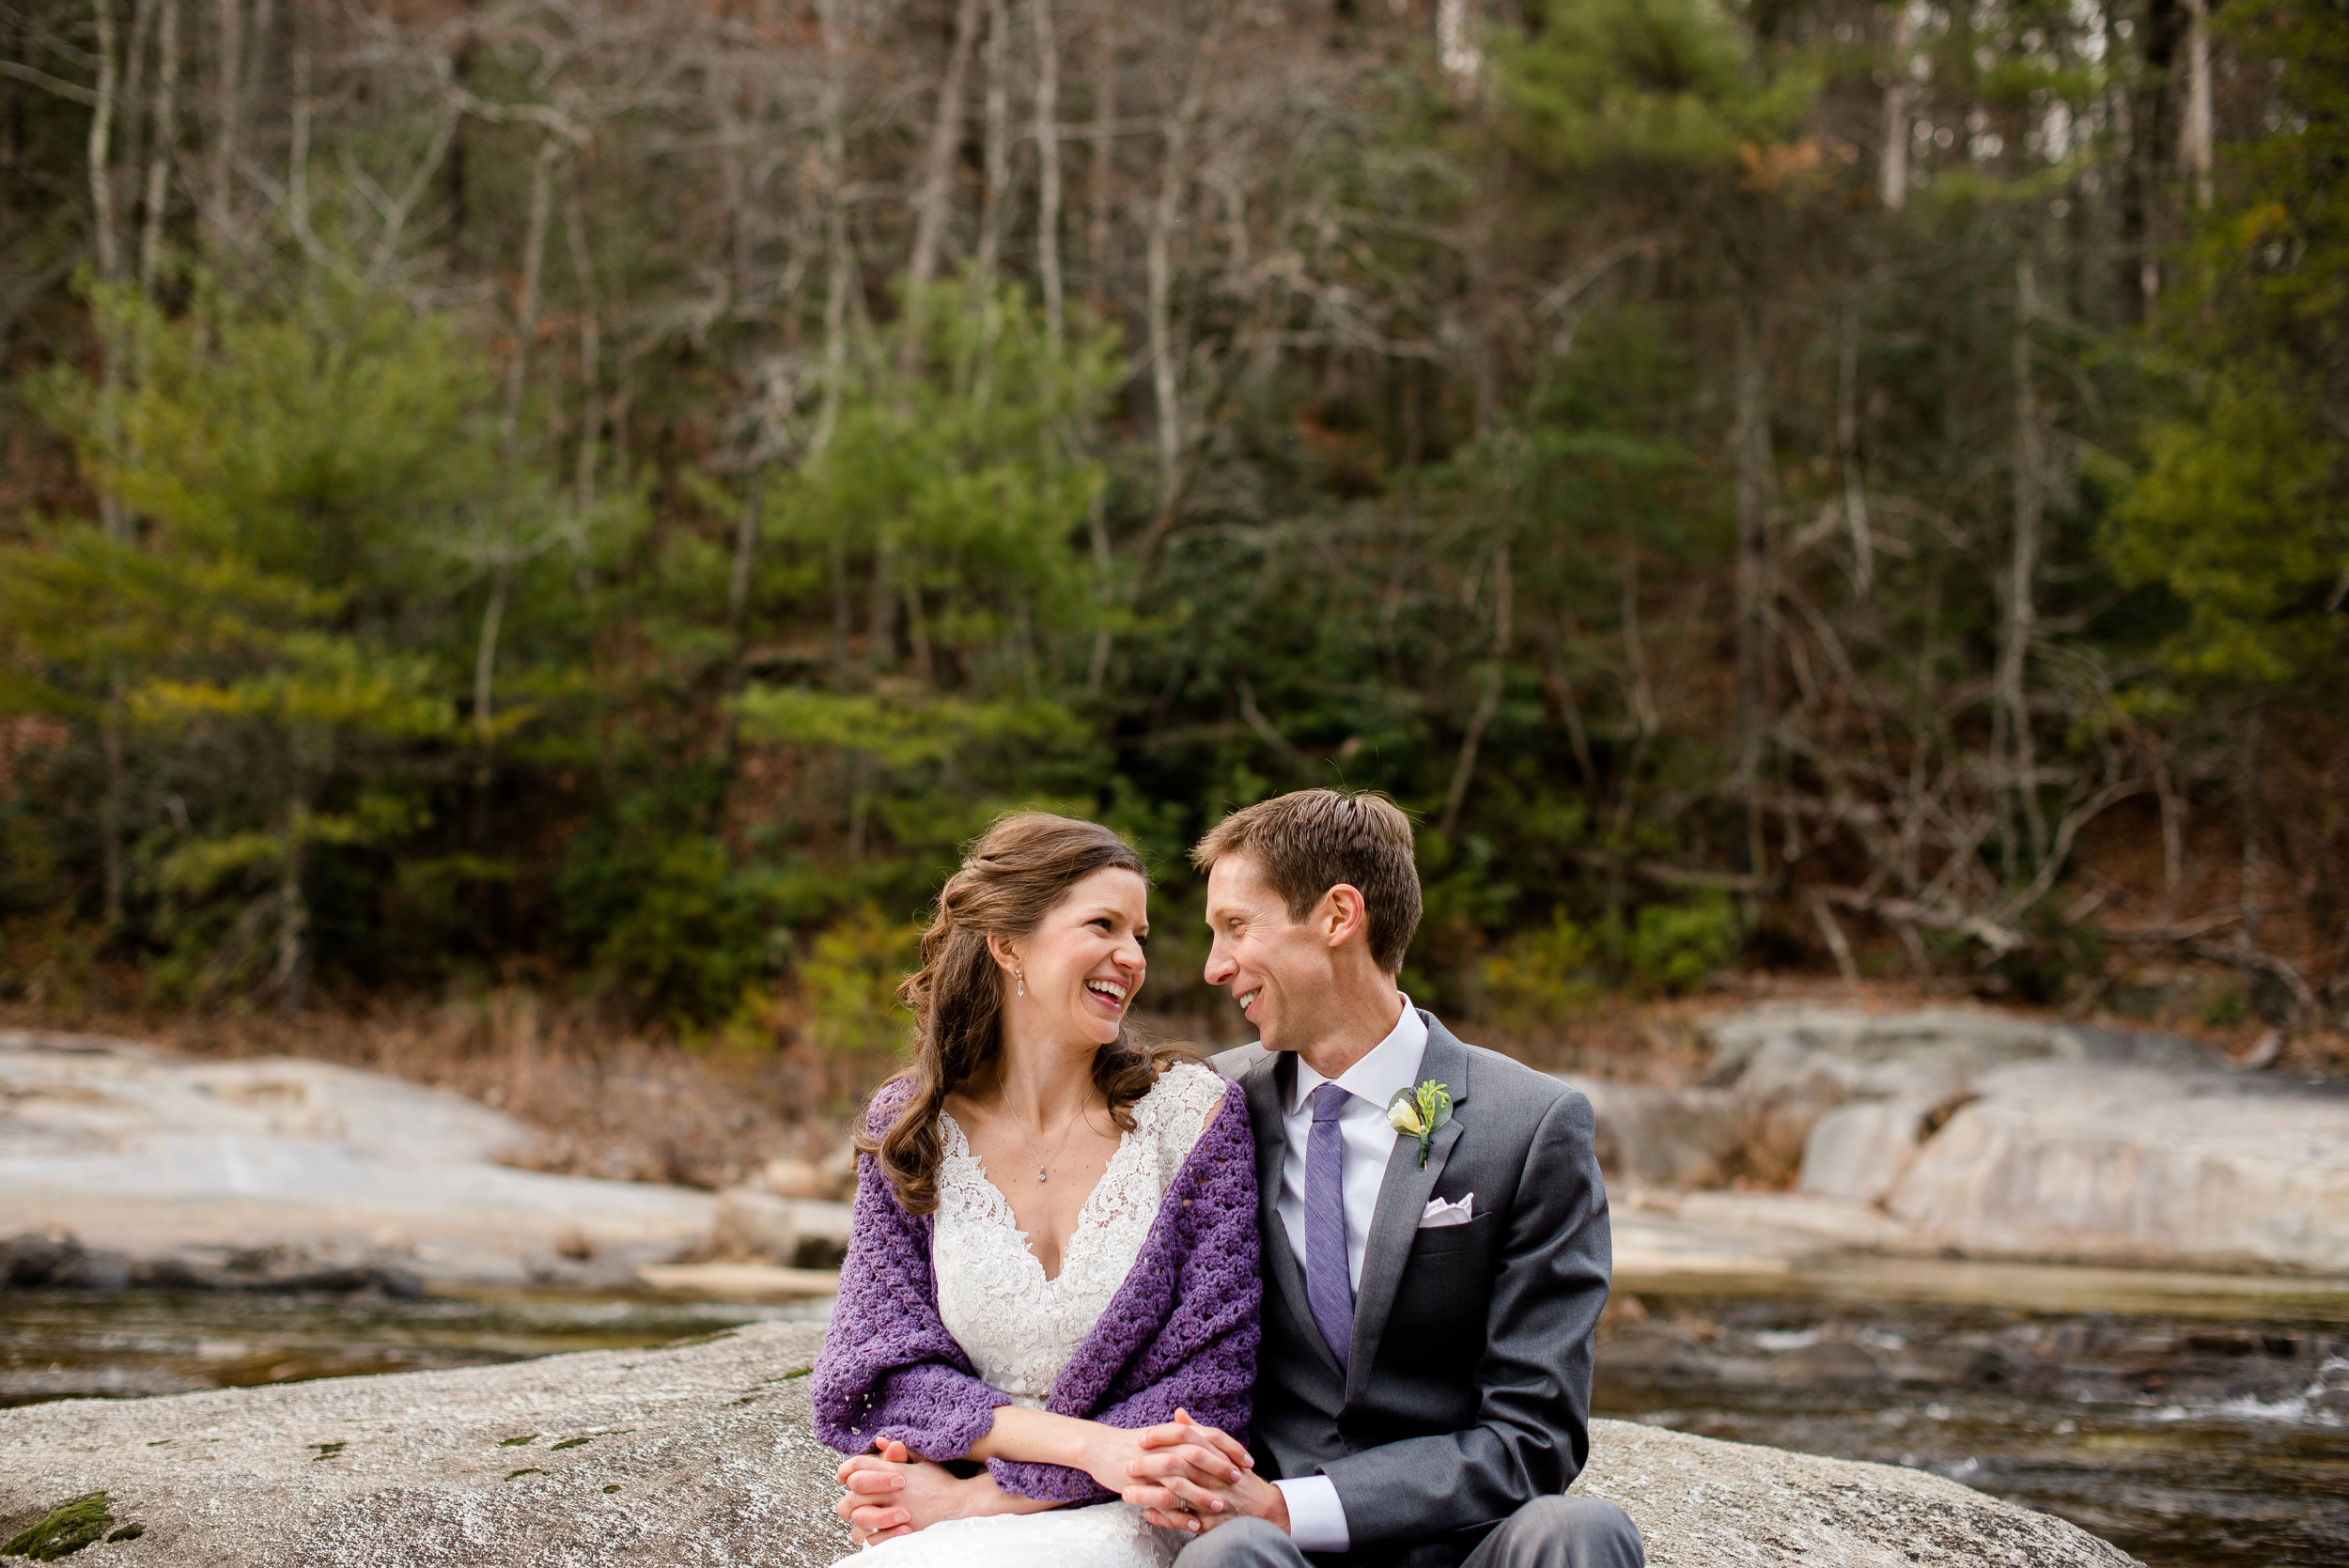 Ethical_Outdoorsy_Winter_Asheville_Destination_Wedding_Bride-and-Groom_Portraits